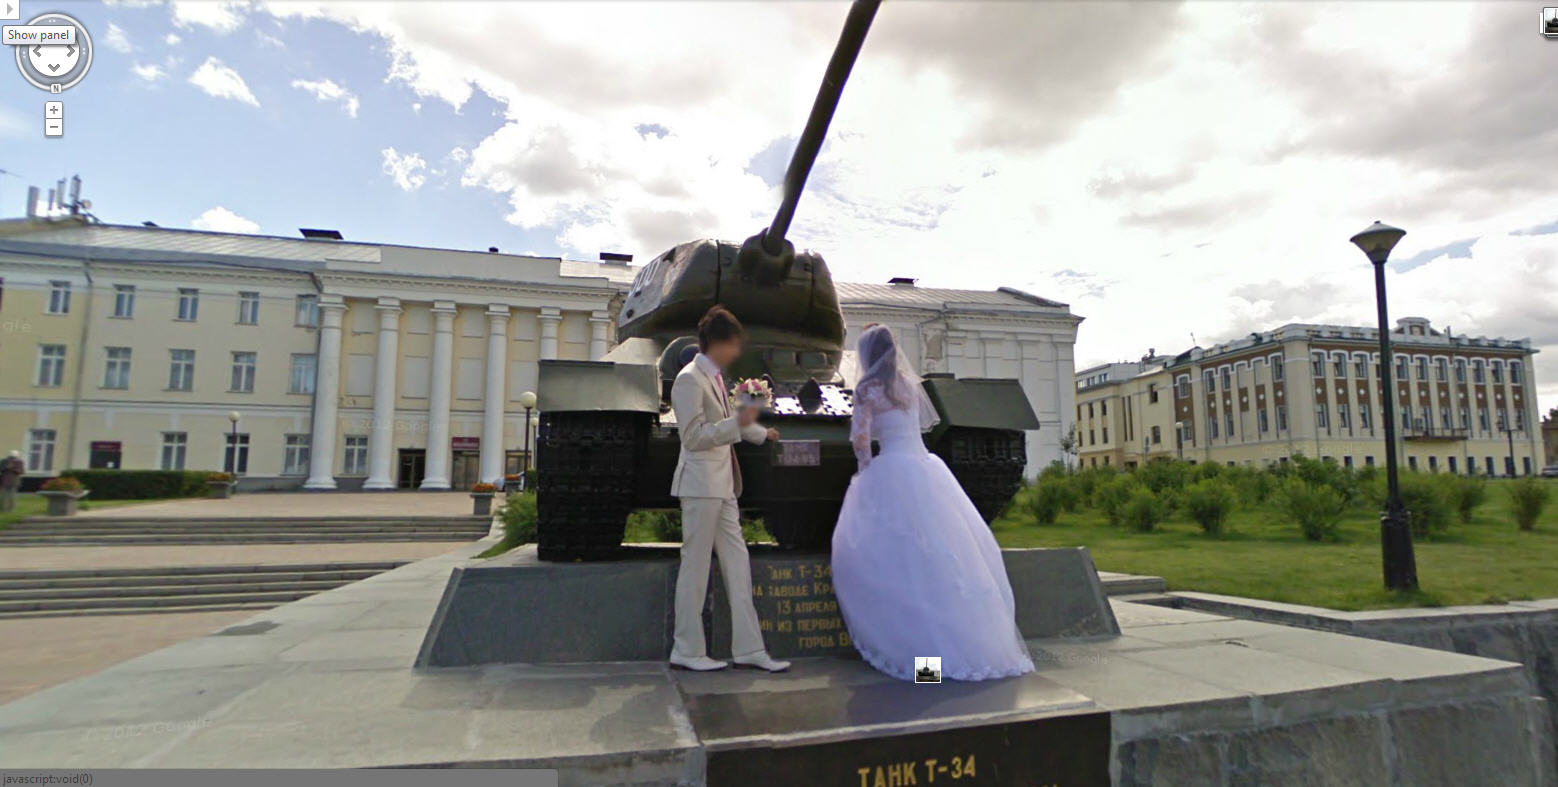 Now that's a memorable wedding picture.